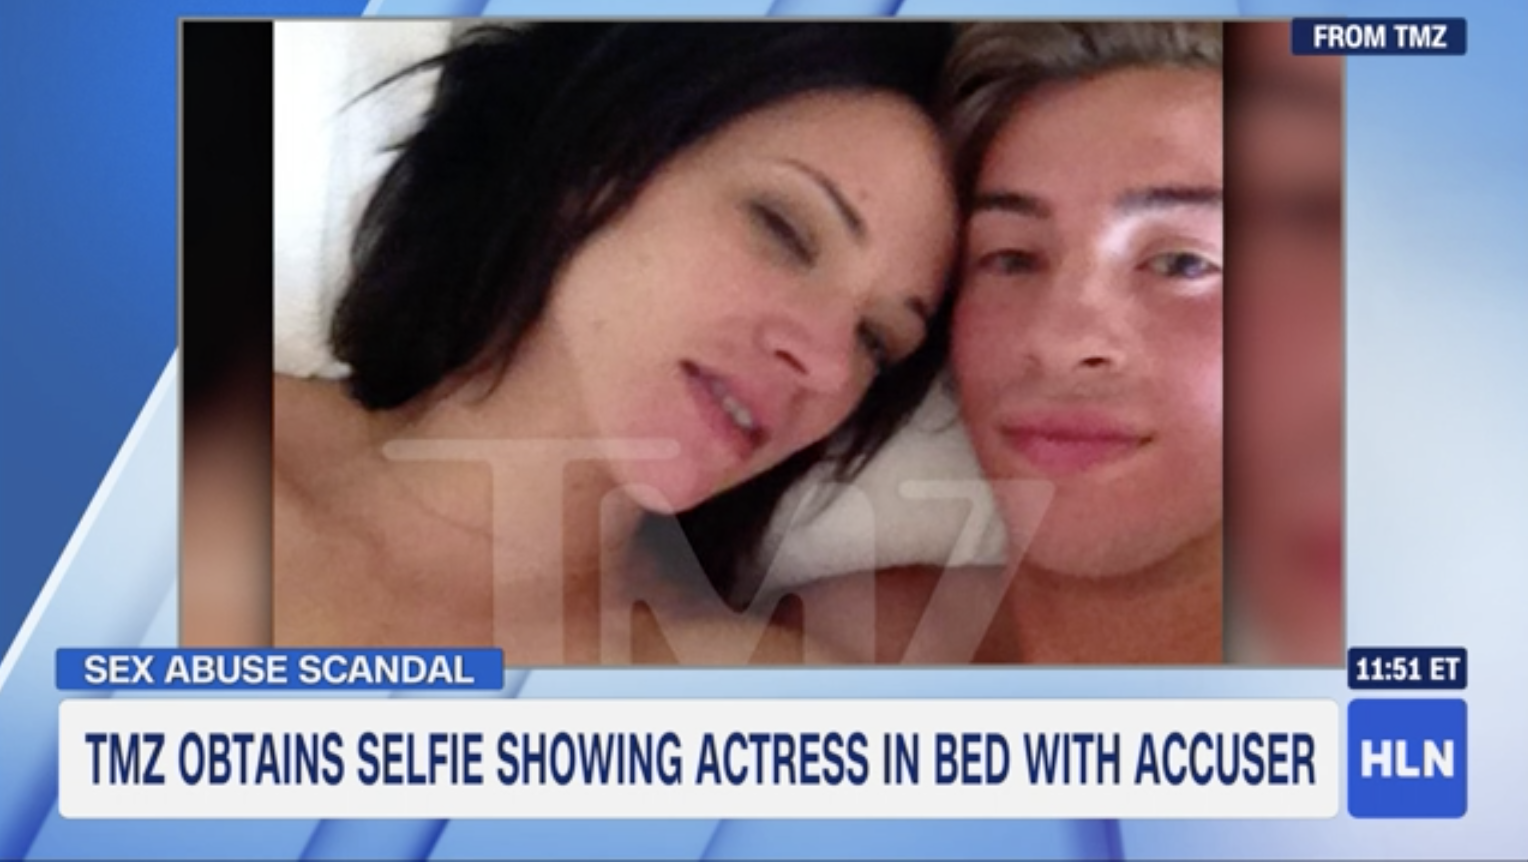 Photo of Asia Argento with 17-year-old actor surfaces